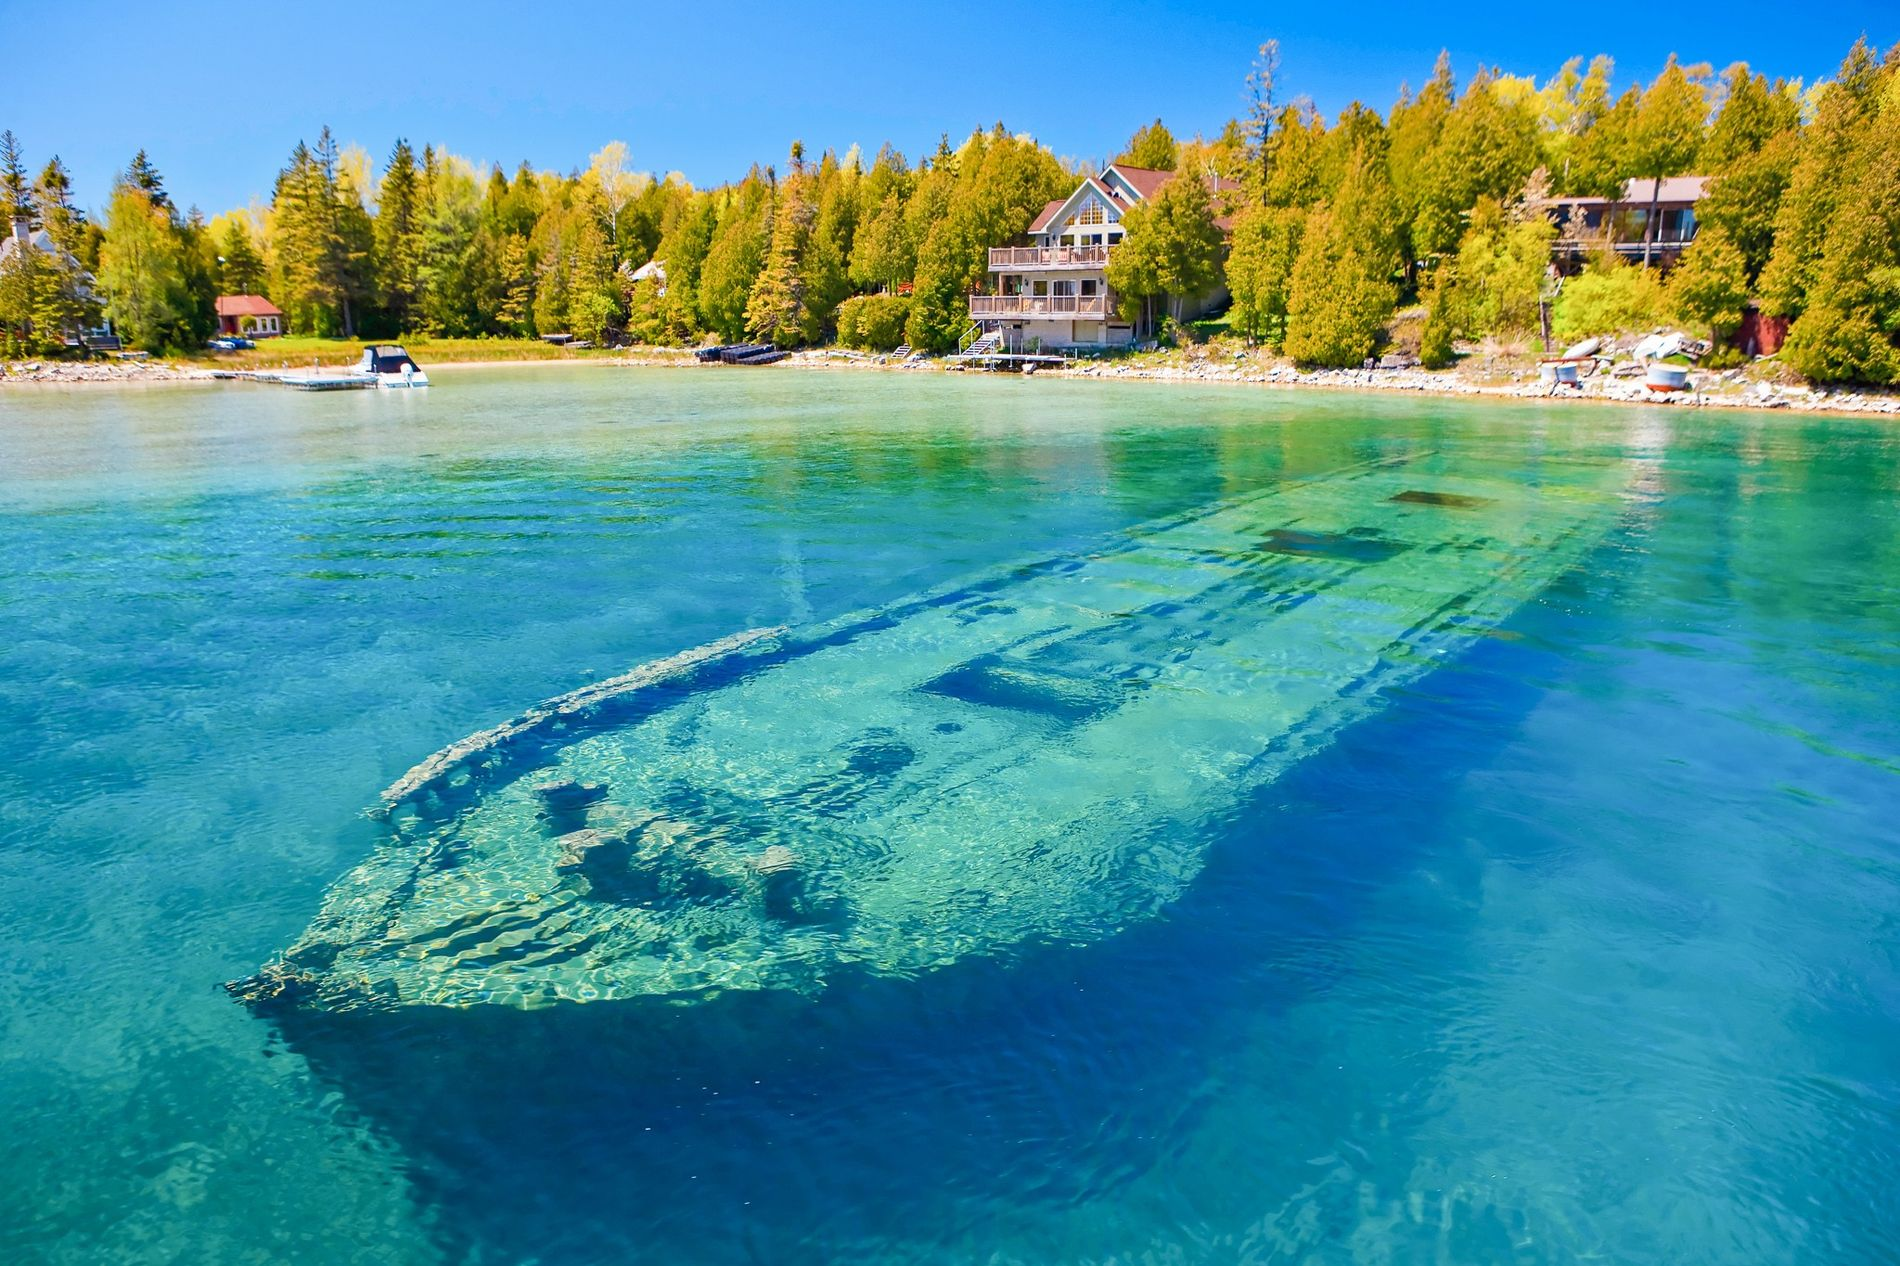 Scuba-lovers will enjoy the park's submerged geological formations and 22 dive-able historic shipwrecks. Non-divers can see ...